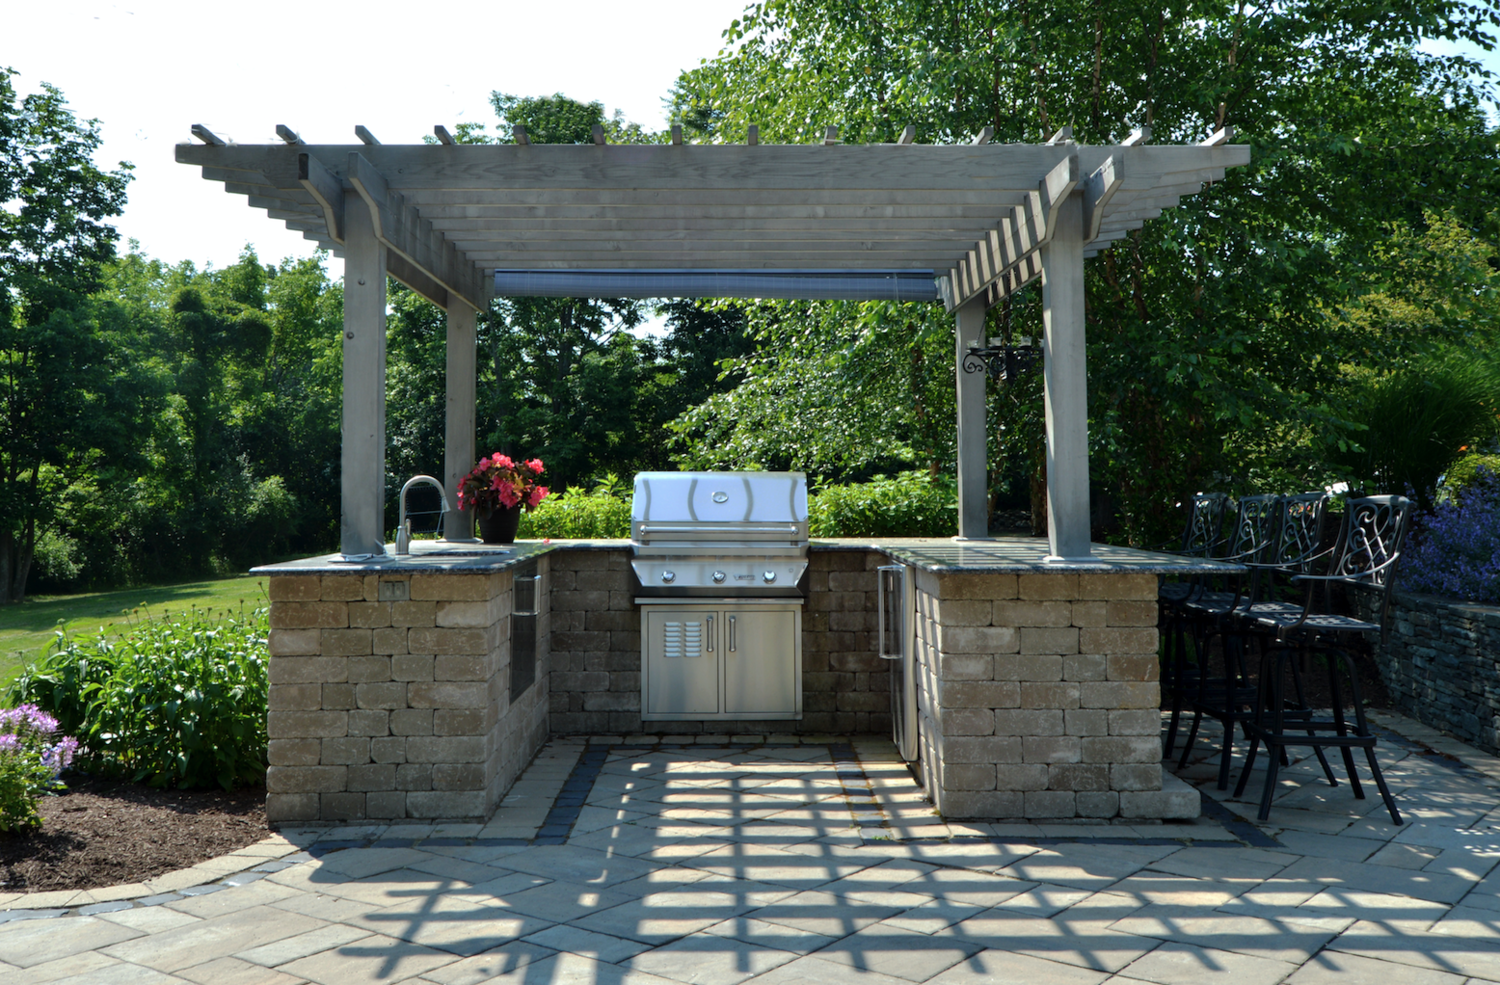 Pavilion And Pergola Landscaping Ideas For An Exquisite Backyard in Monroe NY